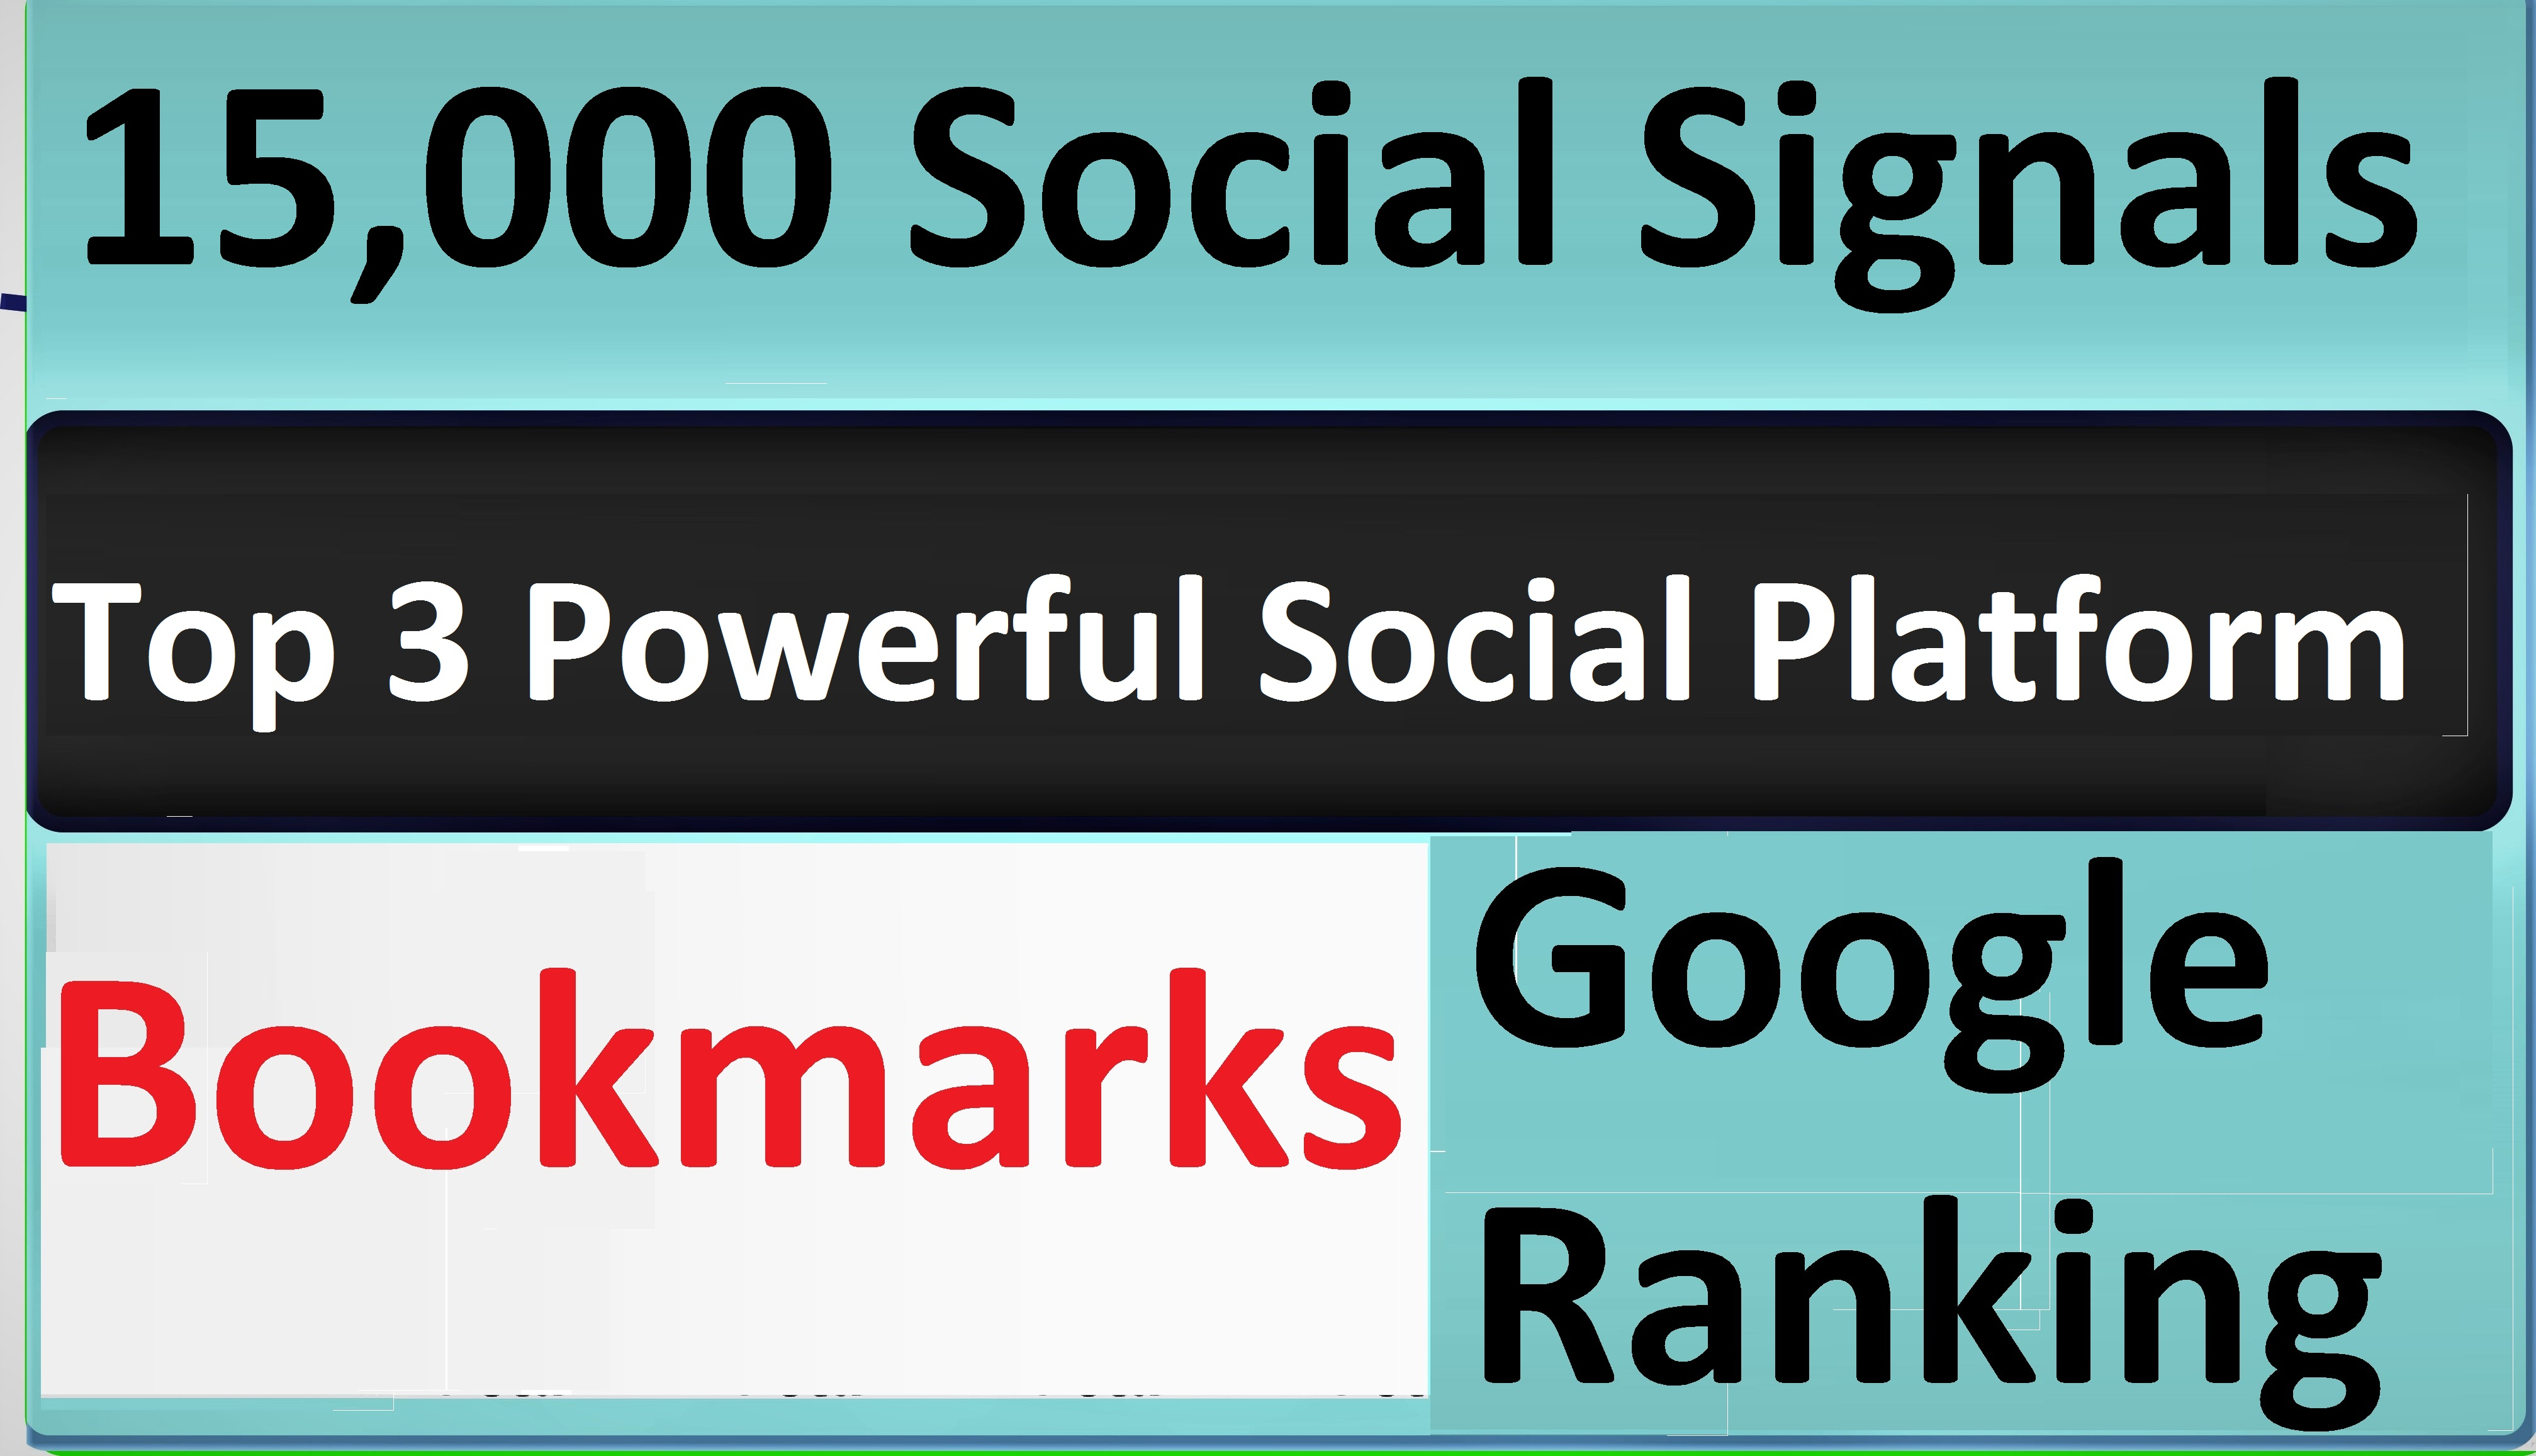 Give Top 3 Powerful Social Platform 15,000 PR9 SEO Social Signals Share Bookmarks Important Google